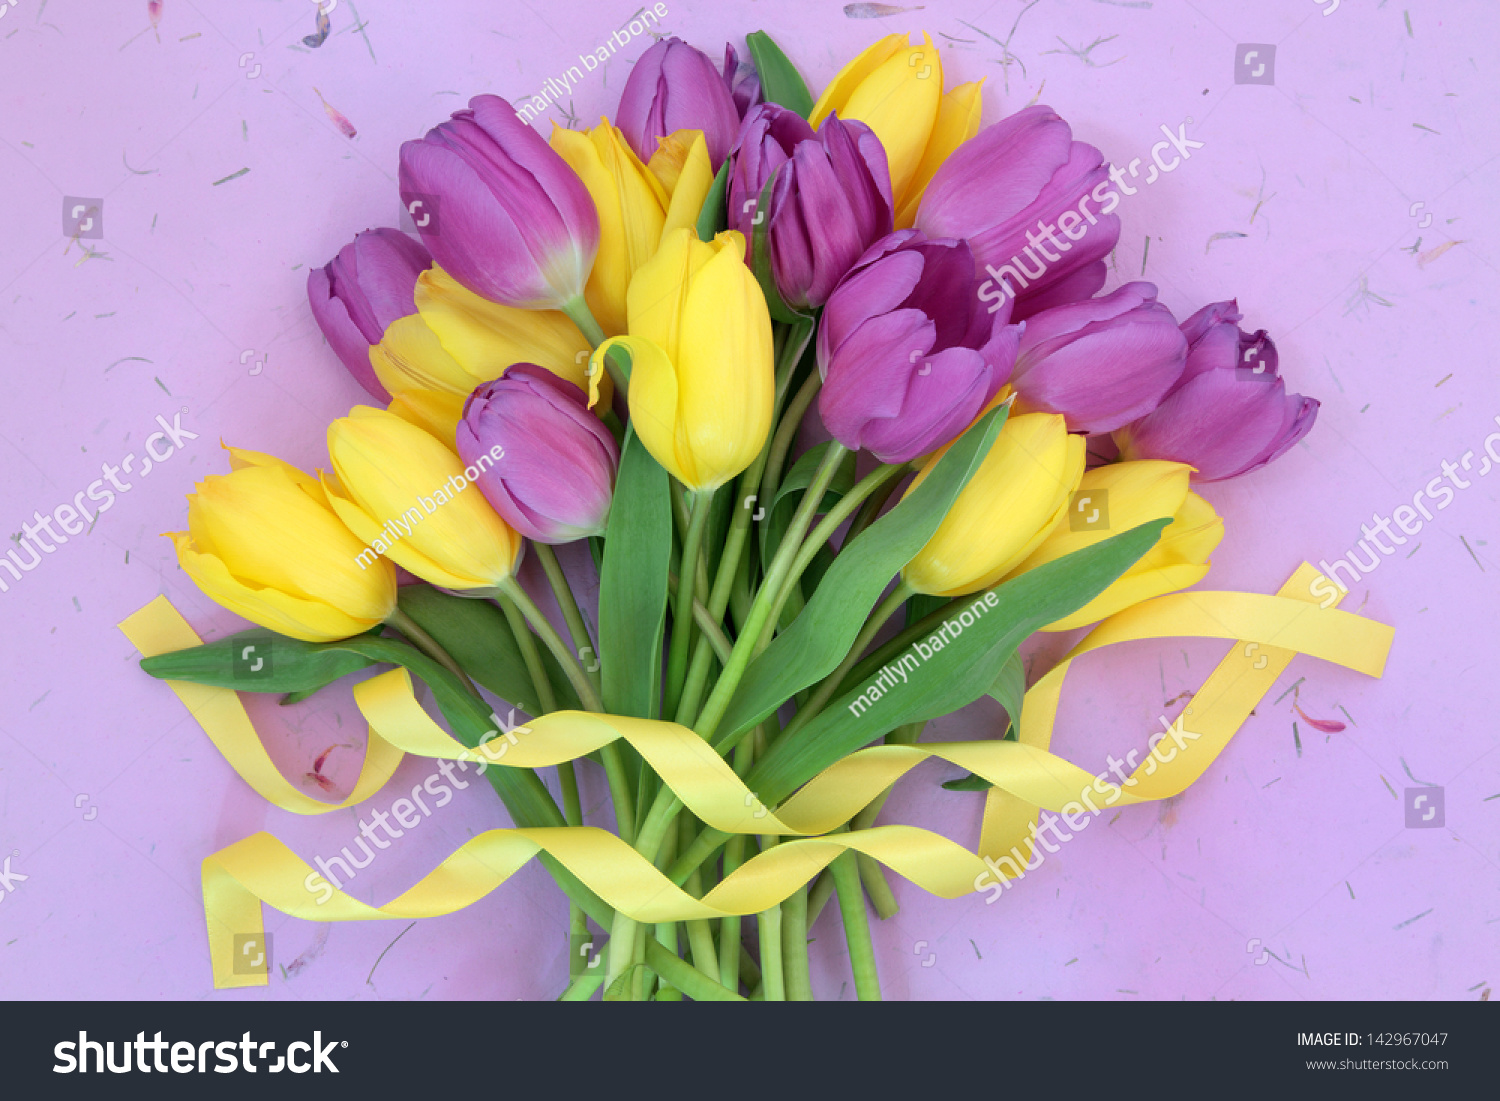 Yellow purple tulip flower bouquet ribbon stock photo royalty free yellow and purple tulip flower bouquet with ribbon over mottled lilac background mightylinksfo